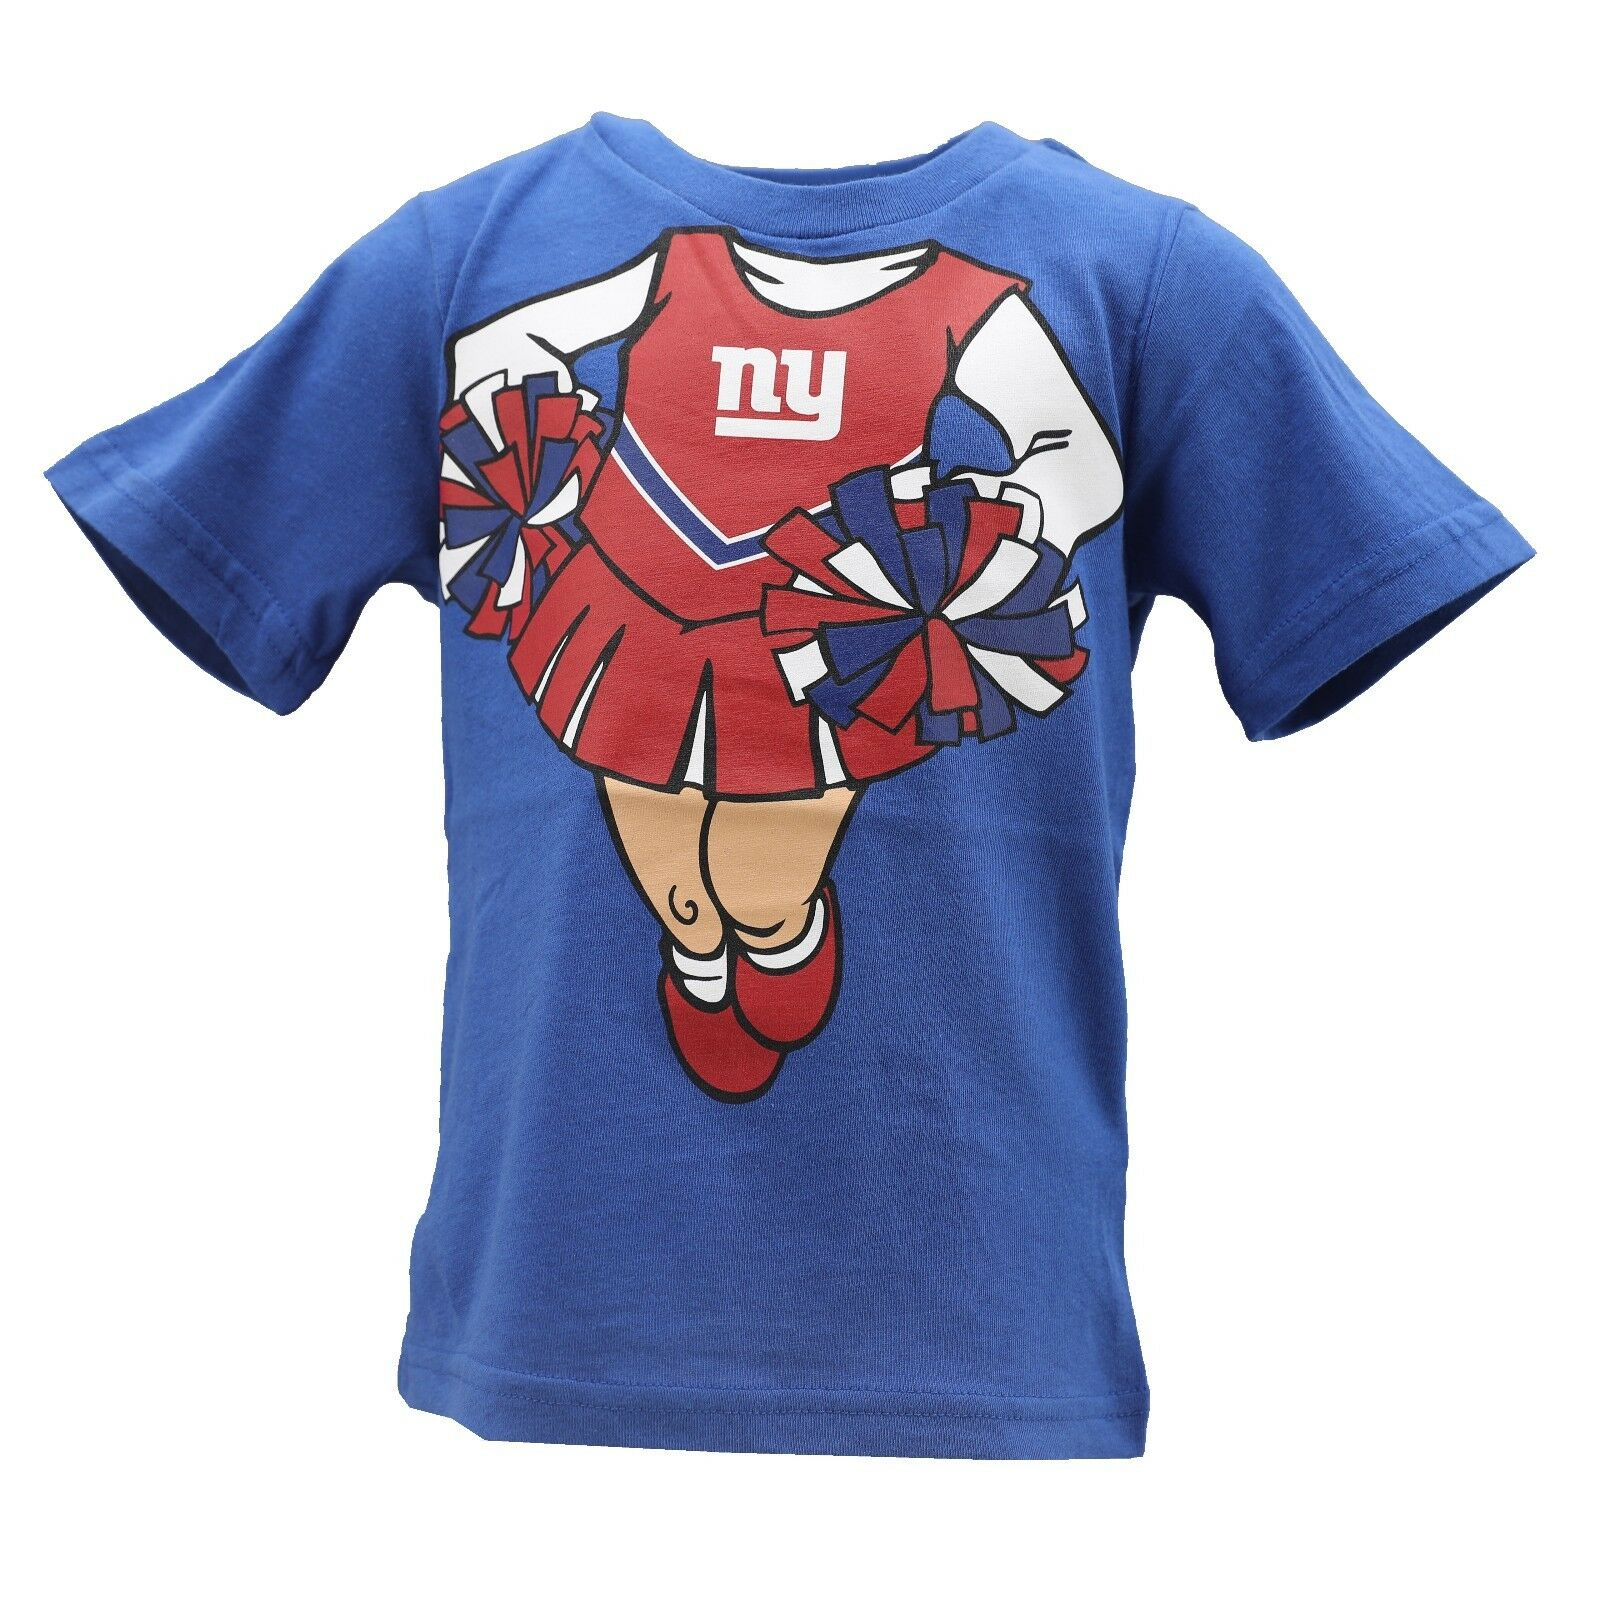 New York Giants NFL Team Apparel Infant Toddler Girls Size T-Shirt New with  Tags 4b29ec4c2